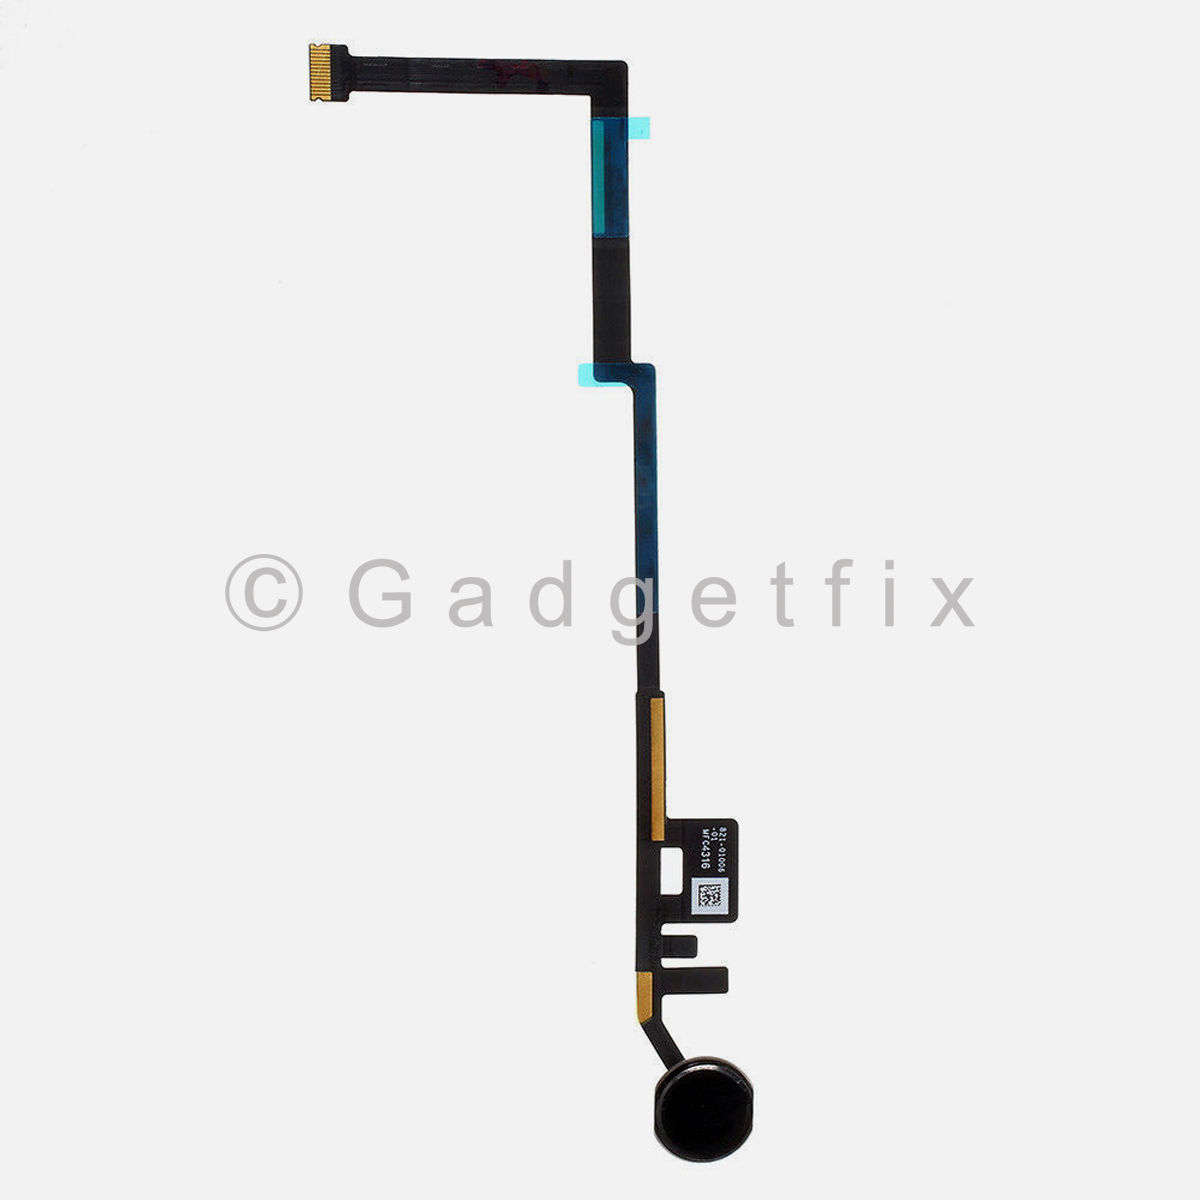 Black Home Button Key Flex Cable Connector For iPad 5th Gen 9.7